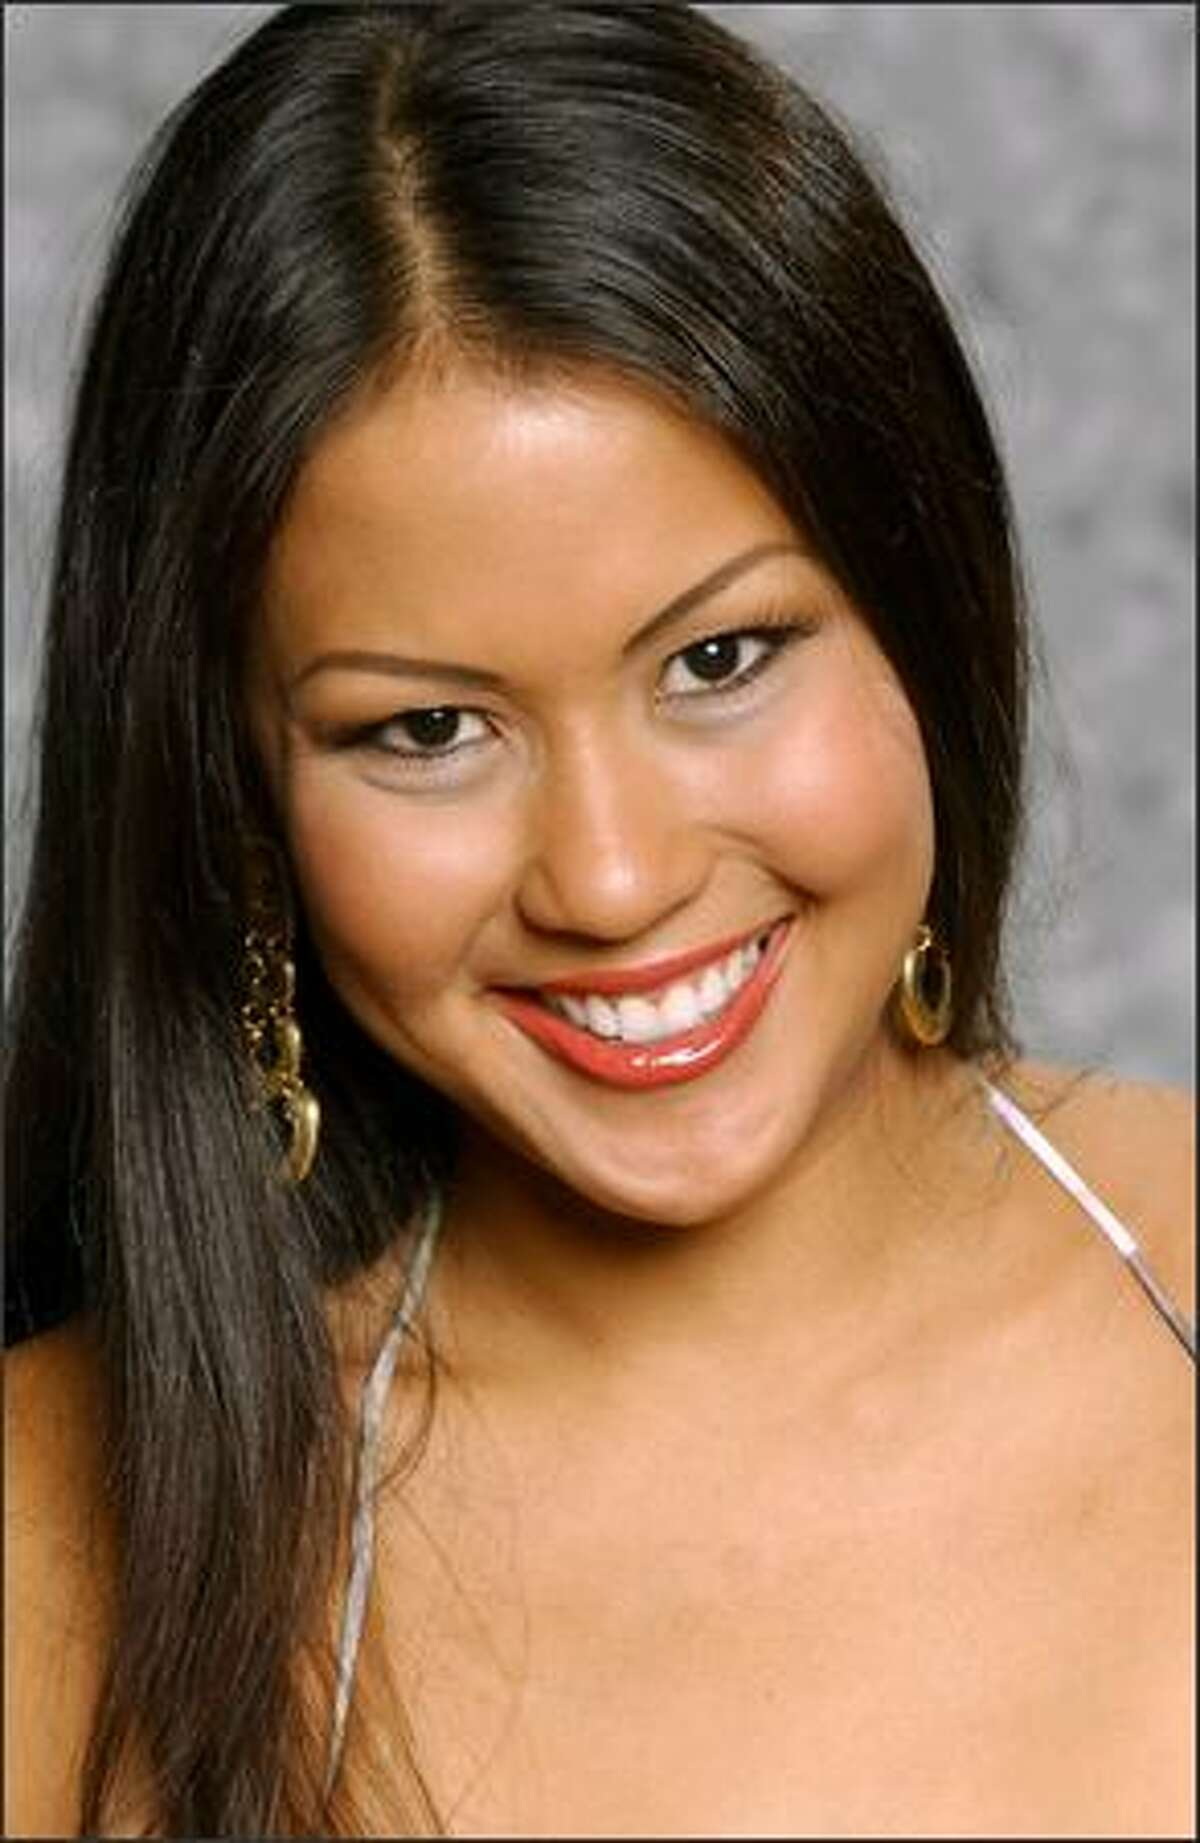 Zizi Lee, Miss Aruba